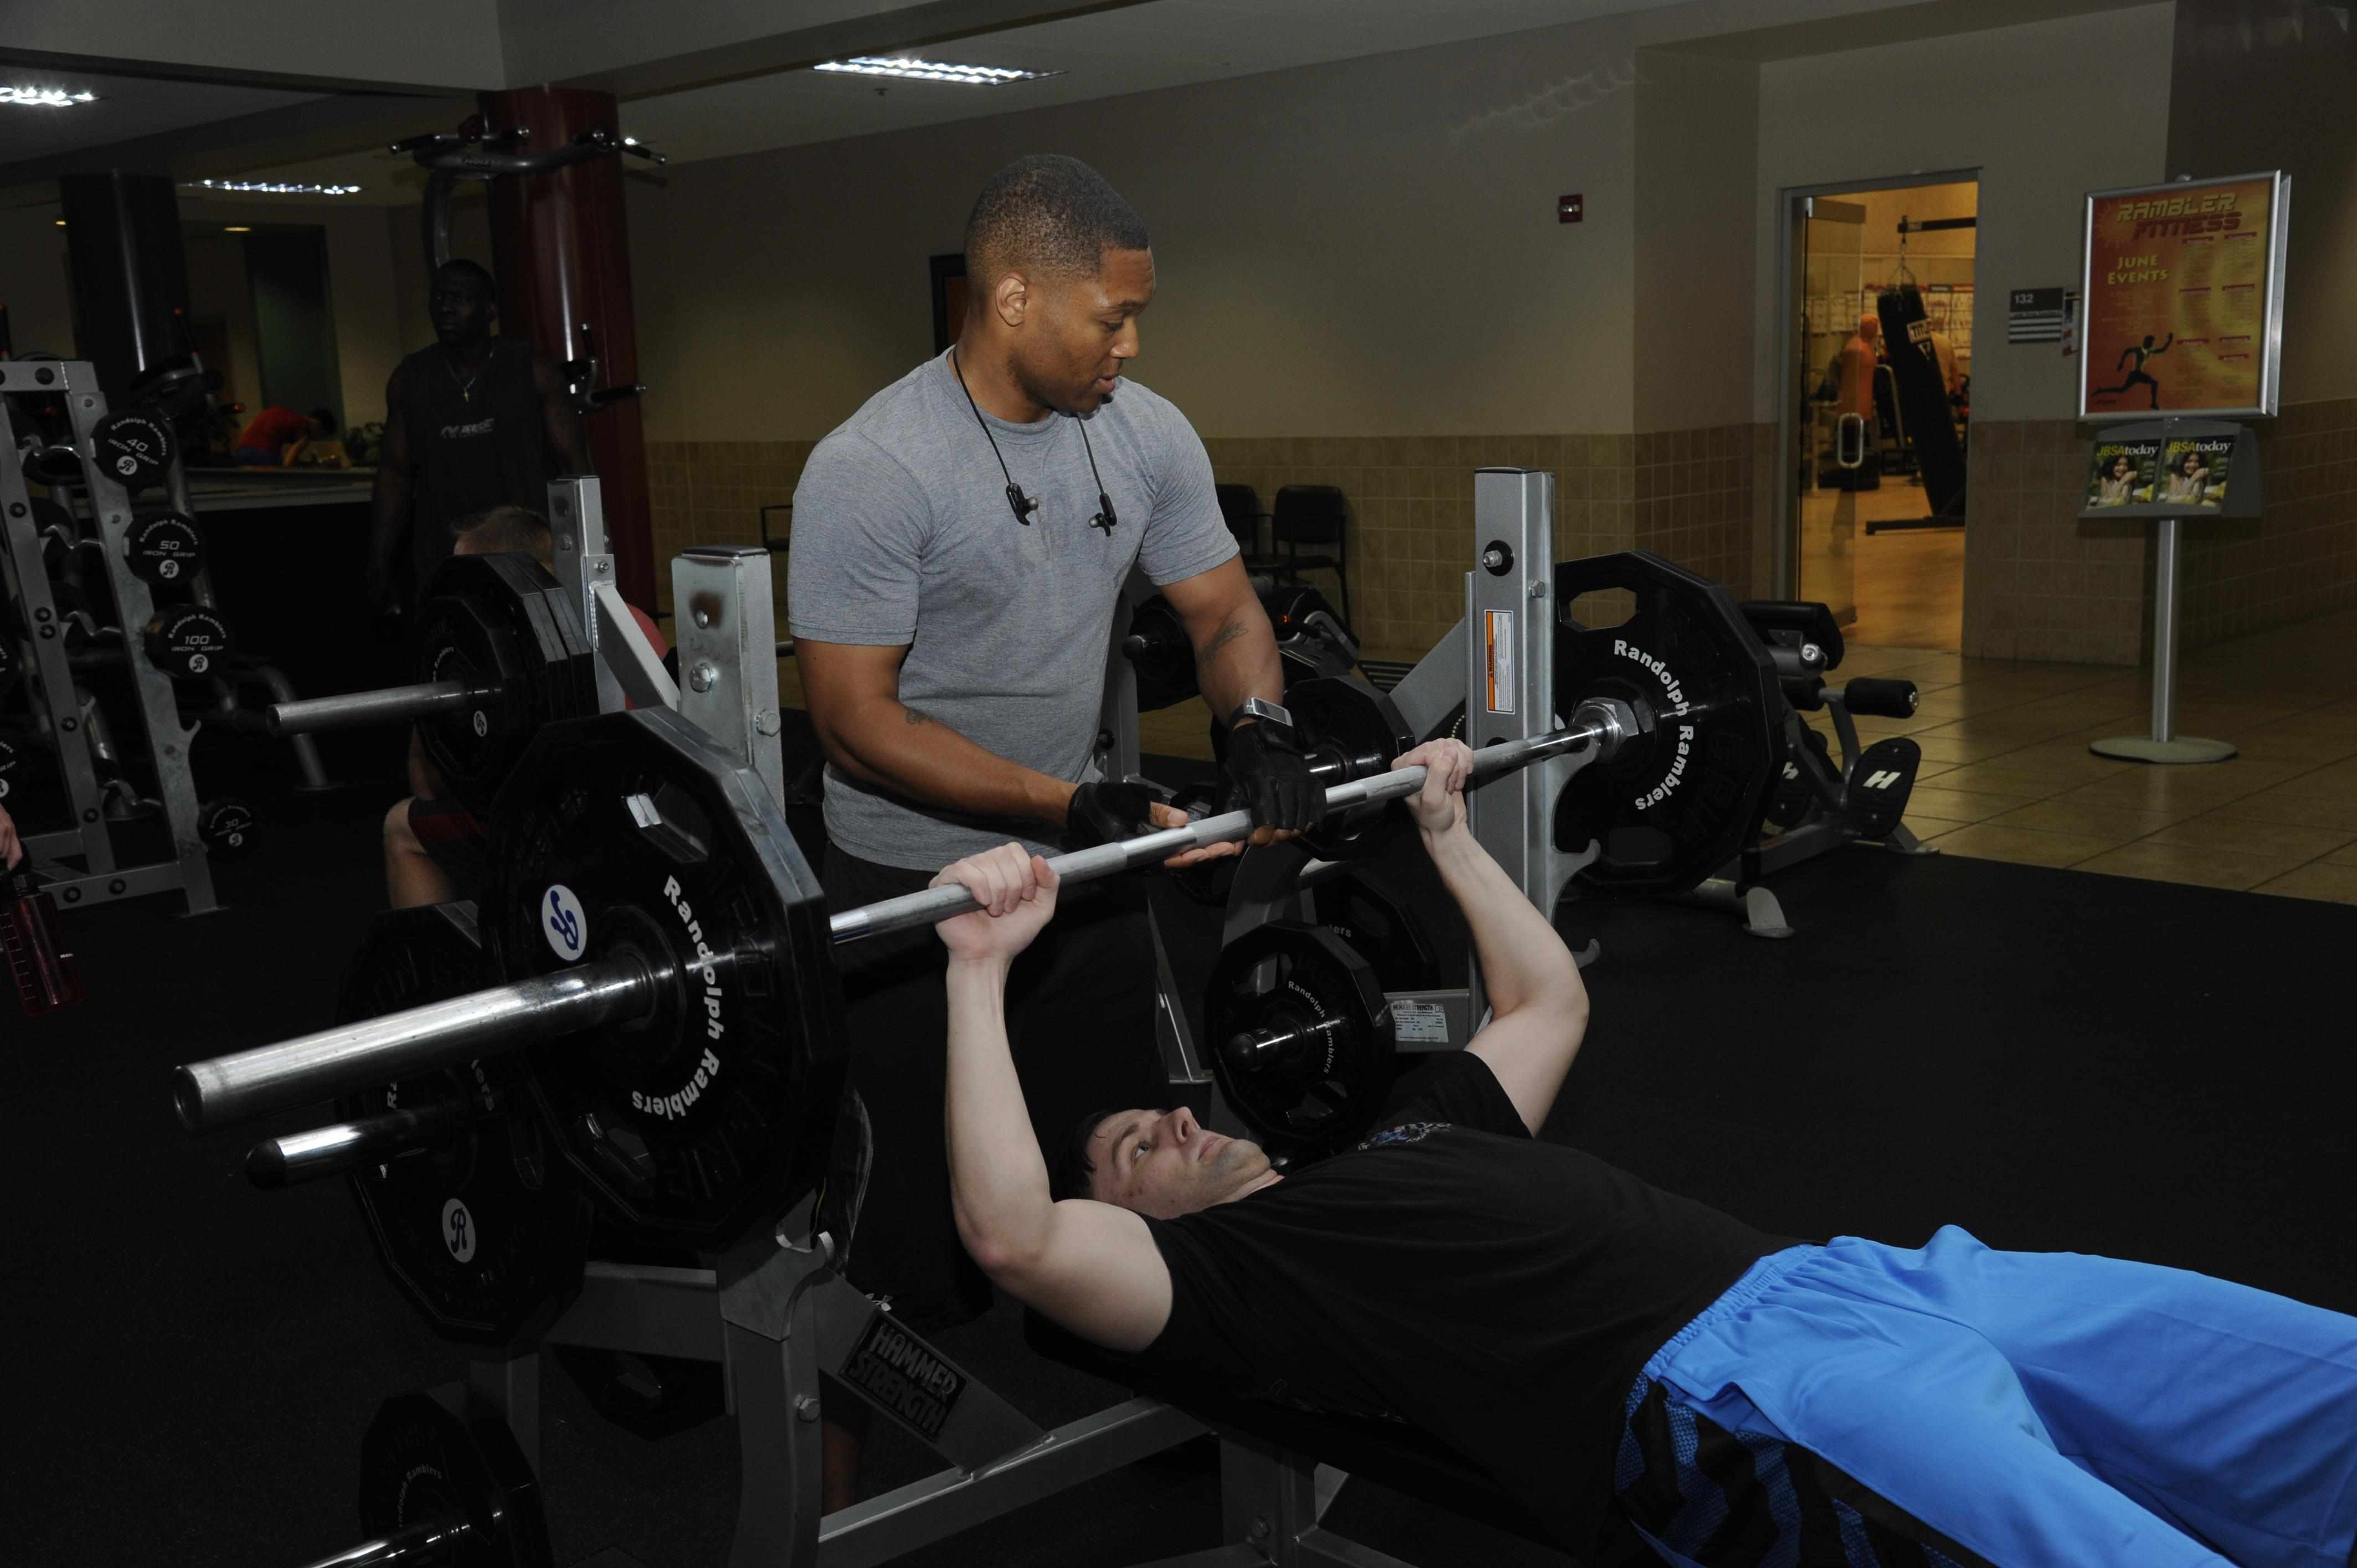 Jbsa Fitness Centers Now Offer 24 Hour Access Gt Joint Base